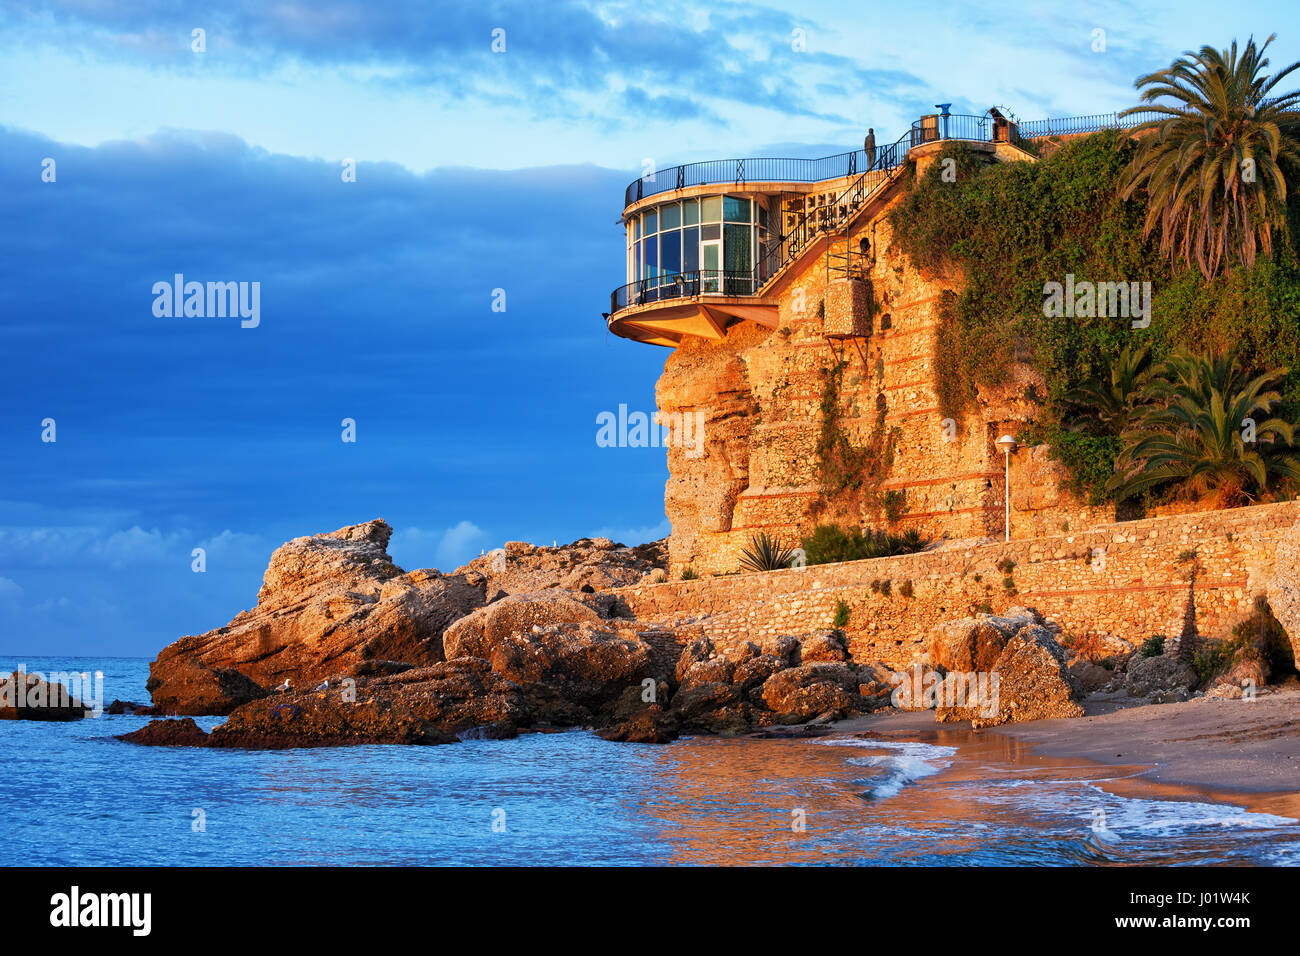 spain nerja town on costa del sol balcon de europa at sunrise stock photo royalty free image. Black Bedroom Furniture Sets. Home Design Ideas